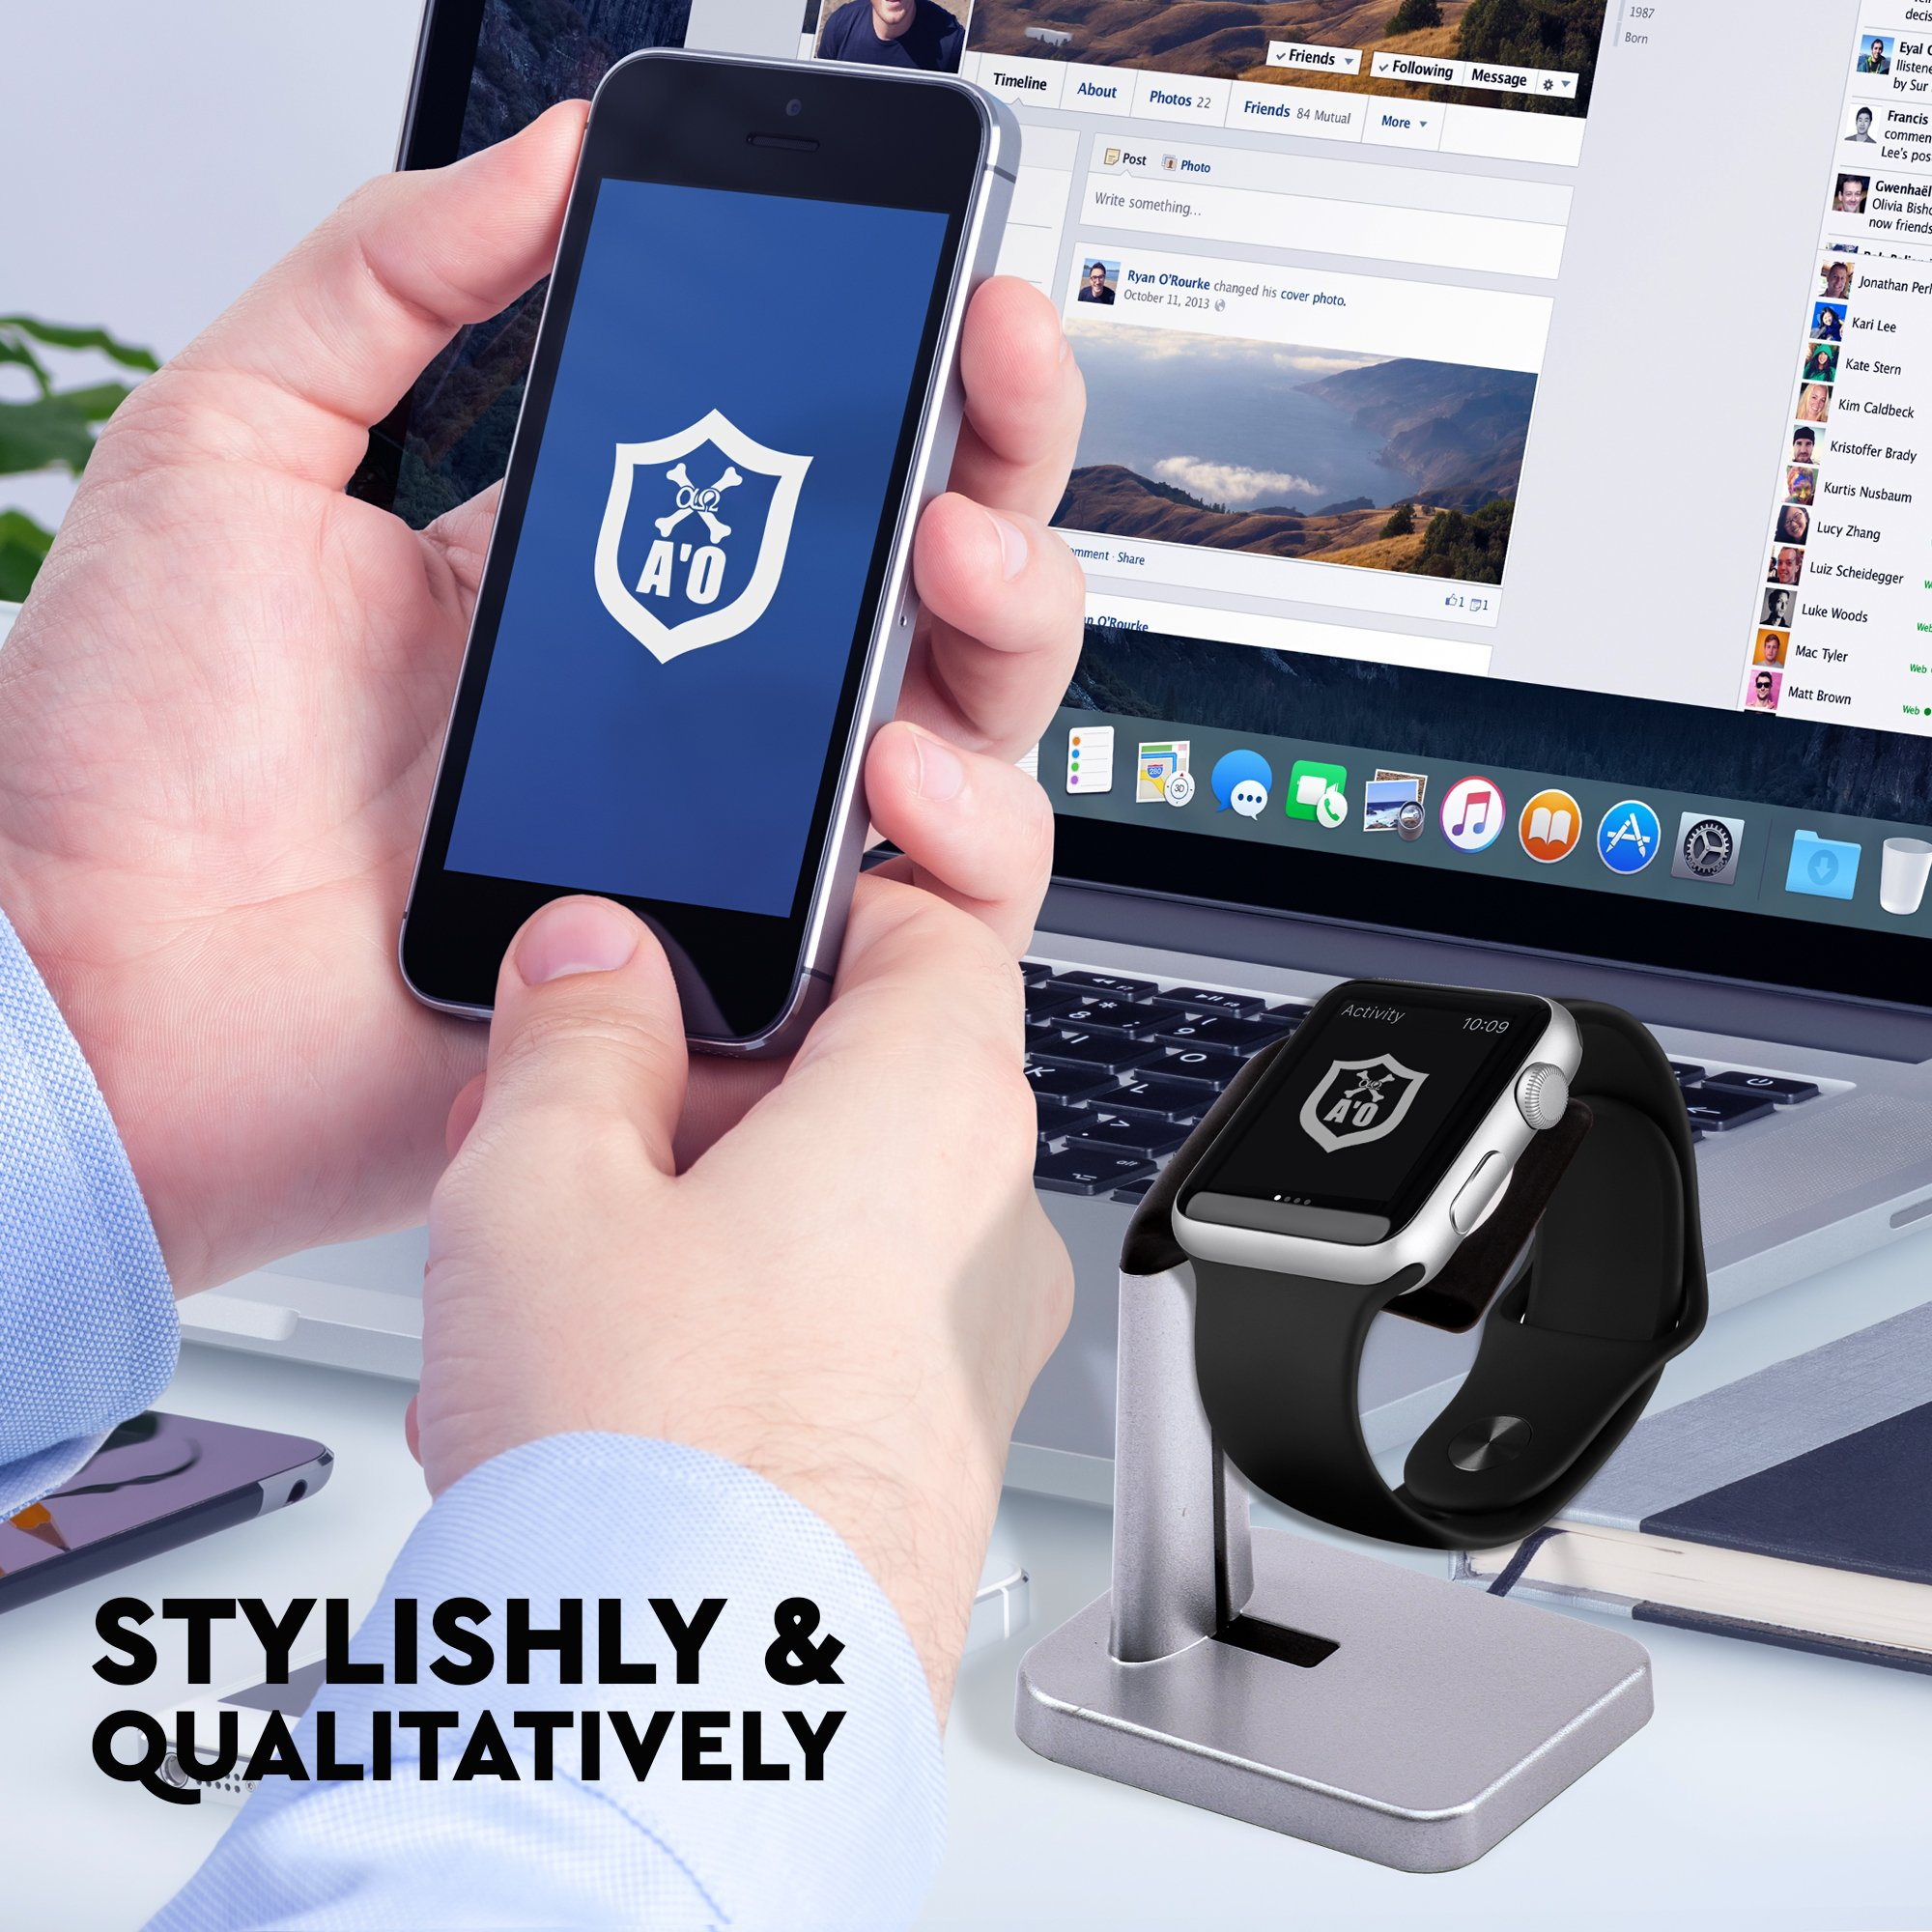 A'O Watch Charger Station Compatible with Apple Watch Charging Dock,iWatch holder stand for smart watches series 38/42mm. Silver black color station, cable not included. Antislip Platform. by A'O (Image #6)